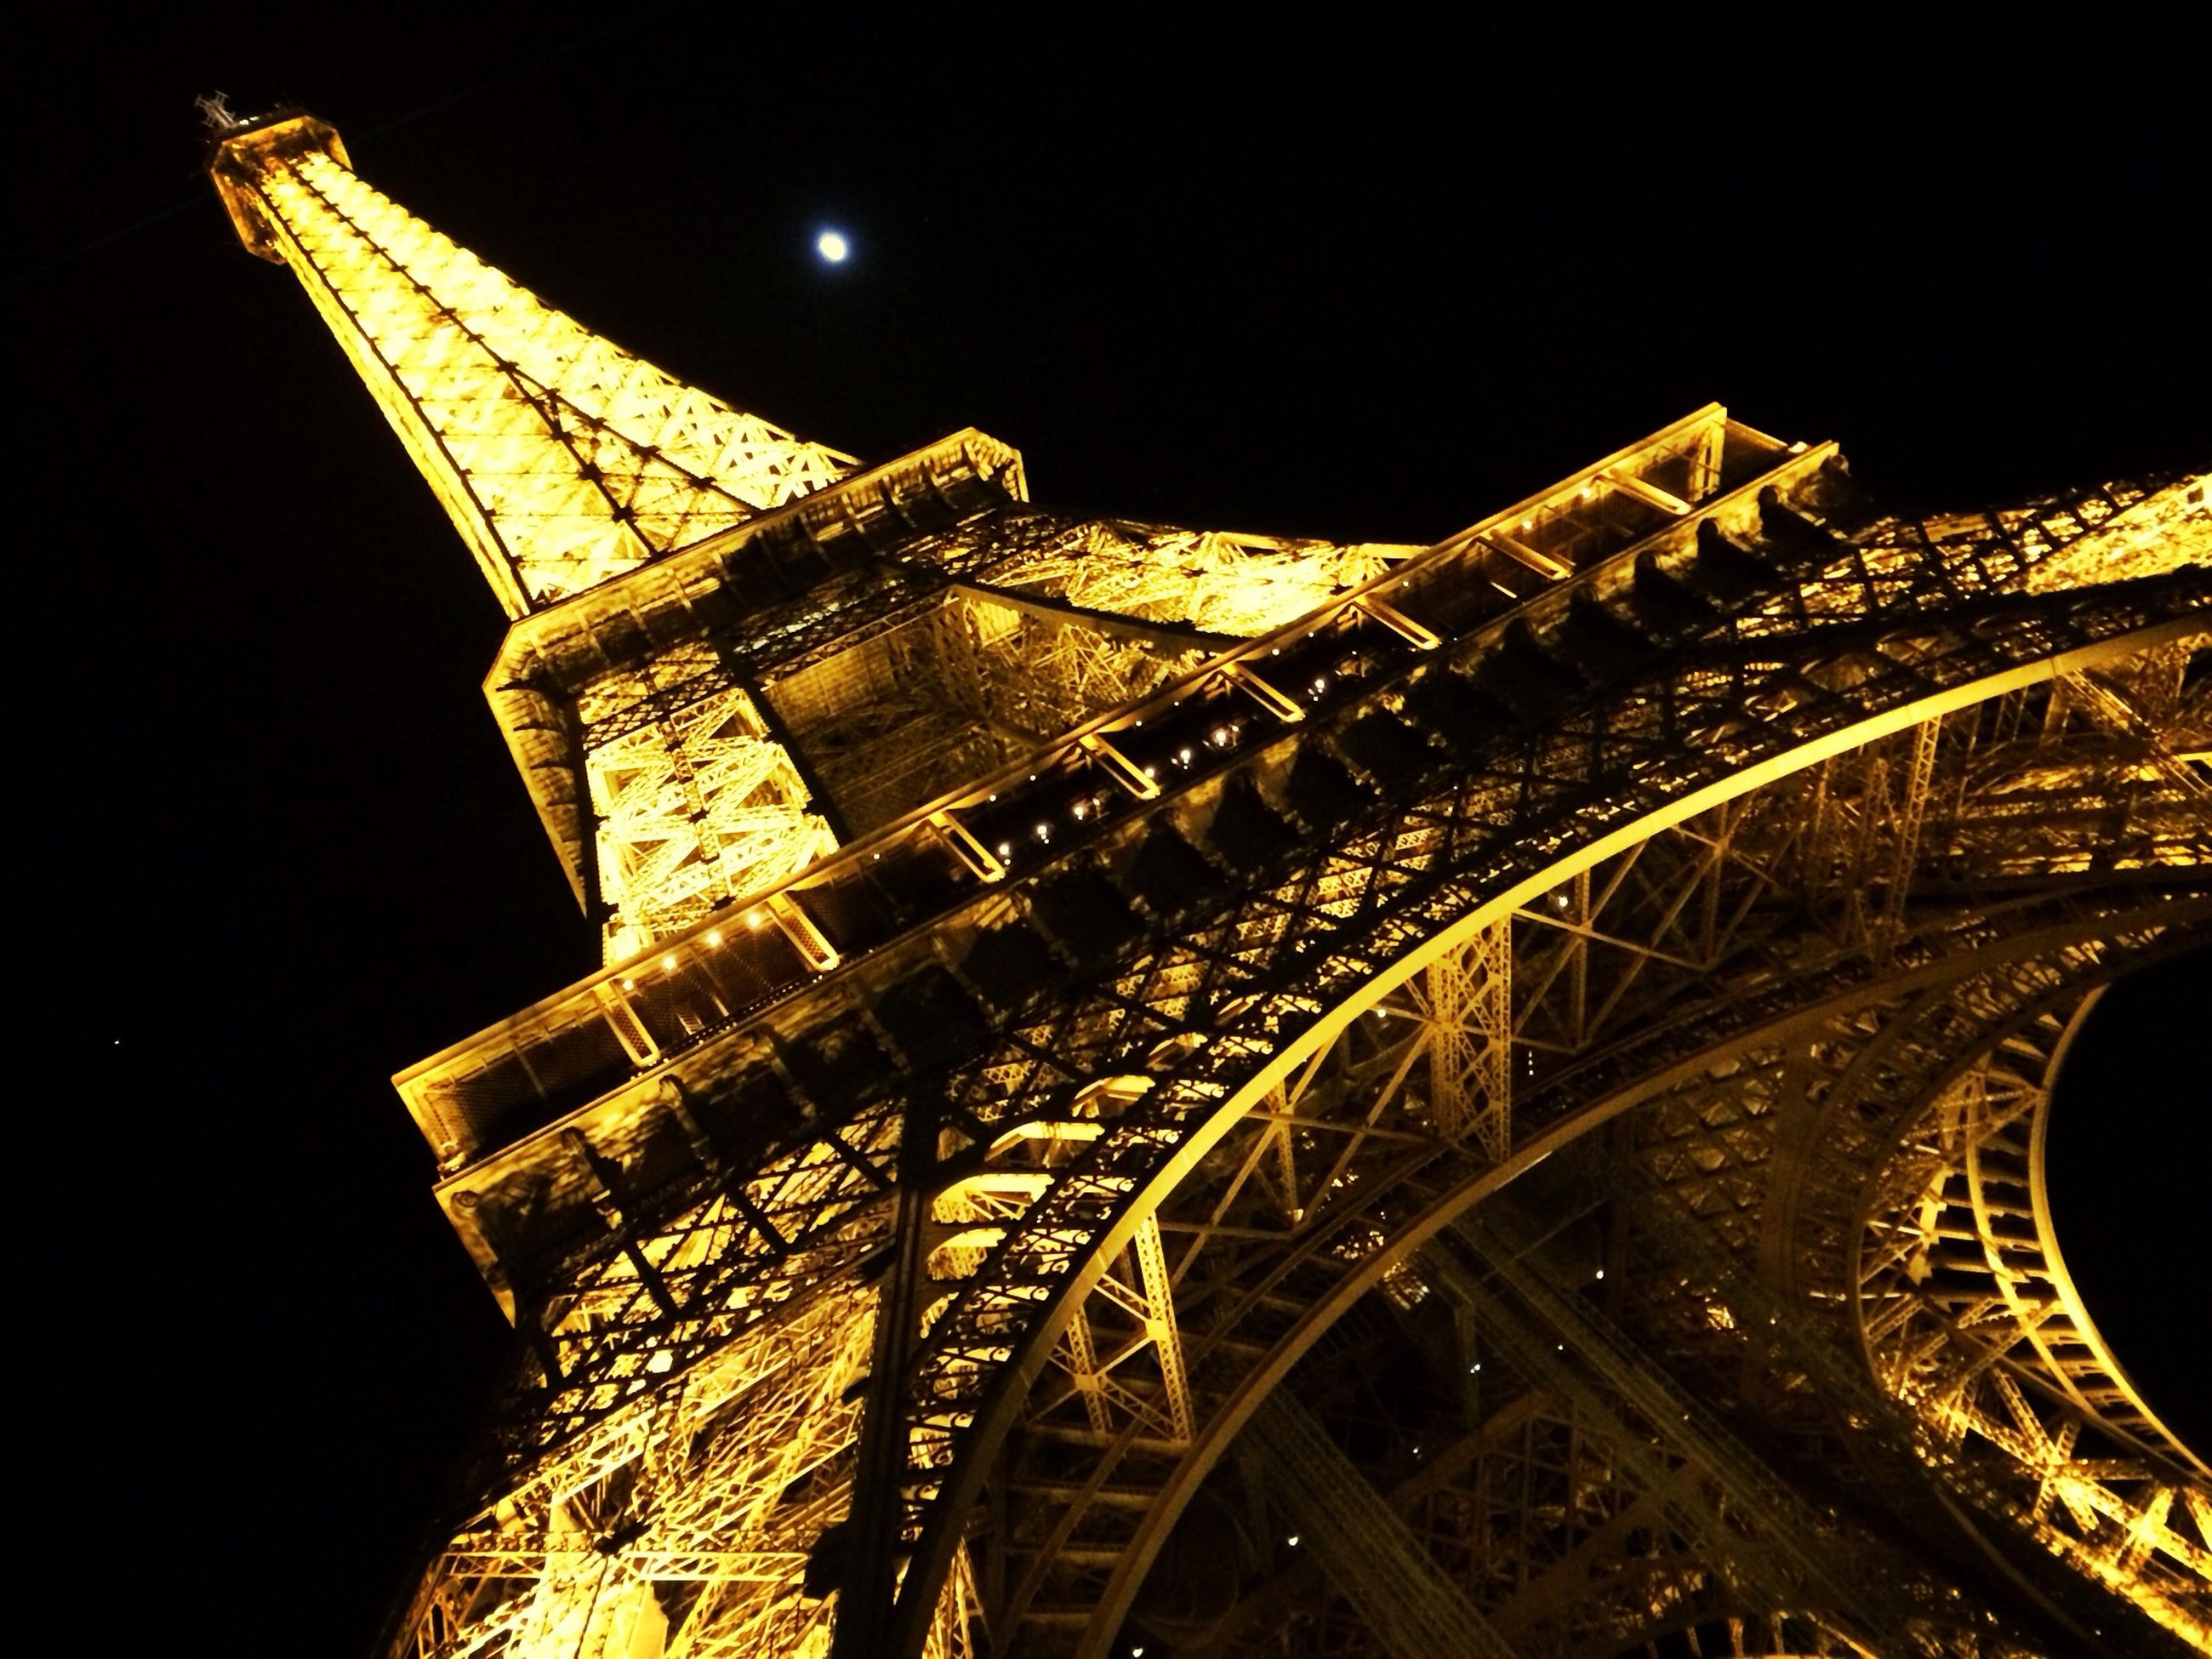 architecture, built structure, night, low angle view, international landmark, famous place, building exterior, travel destinations, tower, clear sky, illuminated, tourism, travel, capital cities, eiffel tower, tall - high, history, copy space, city, culture